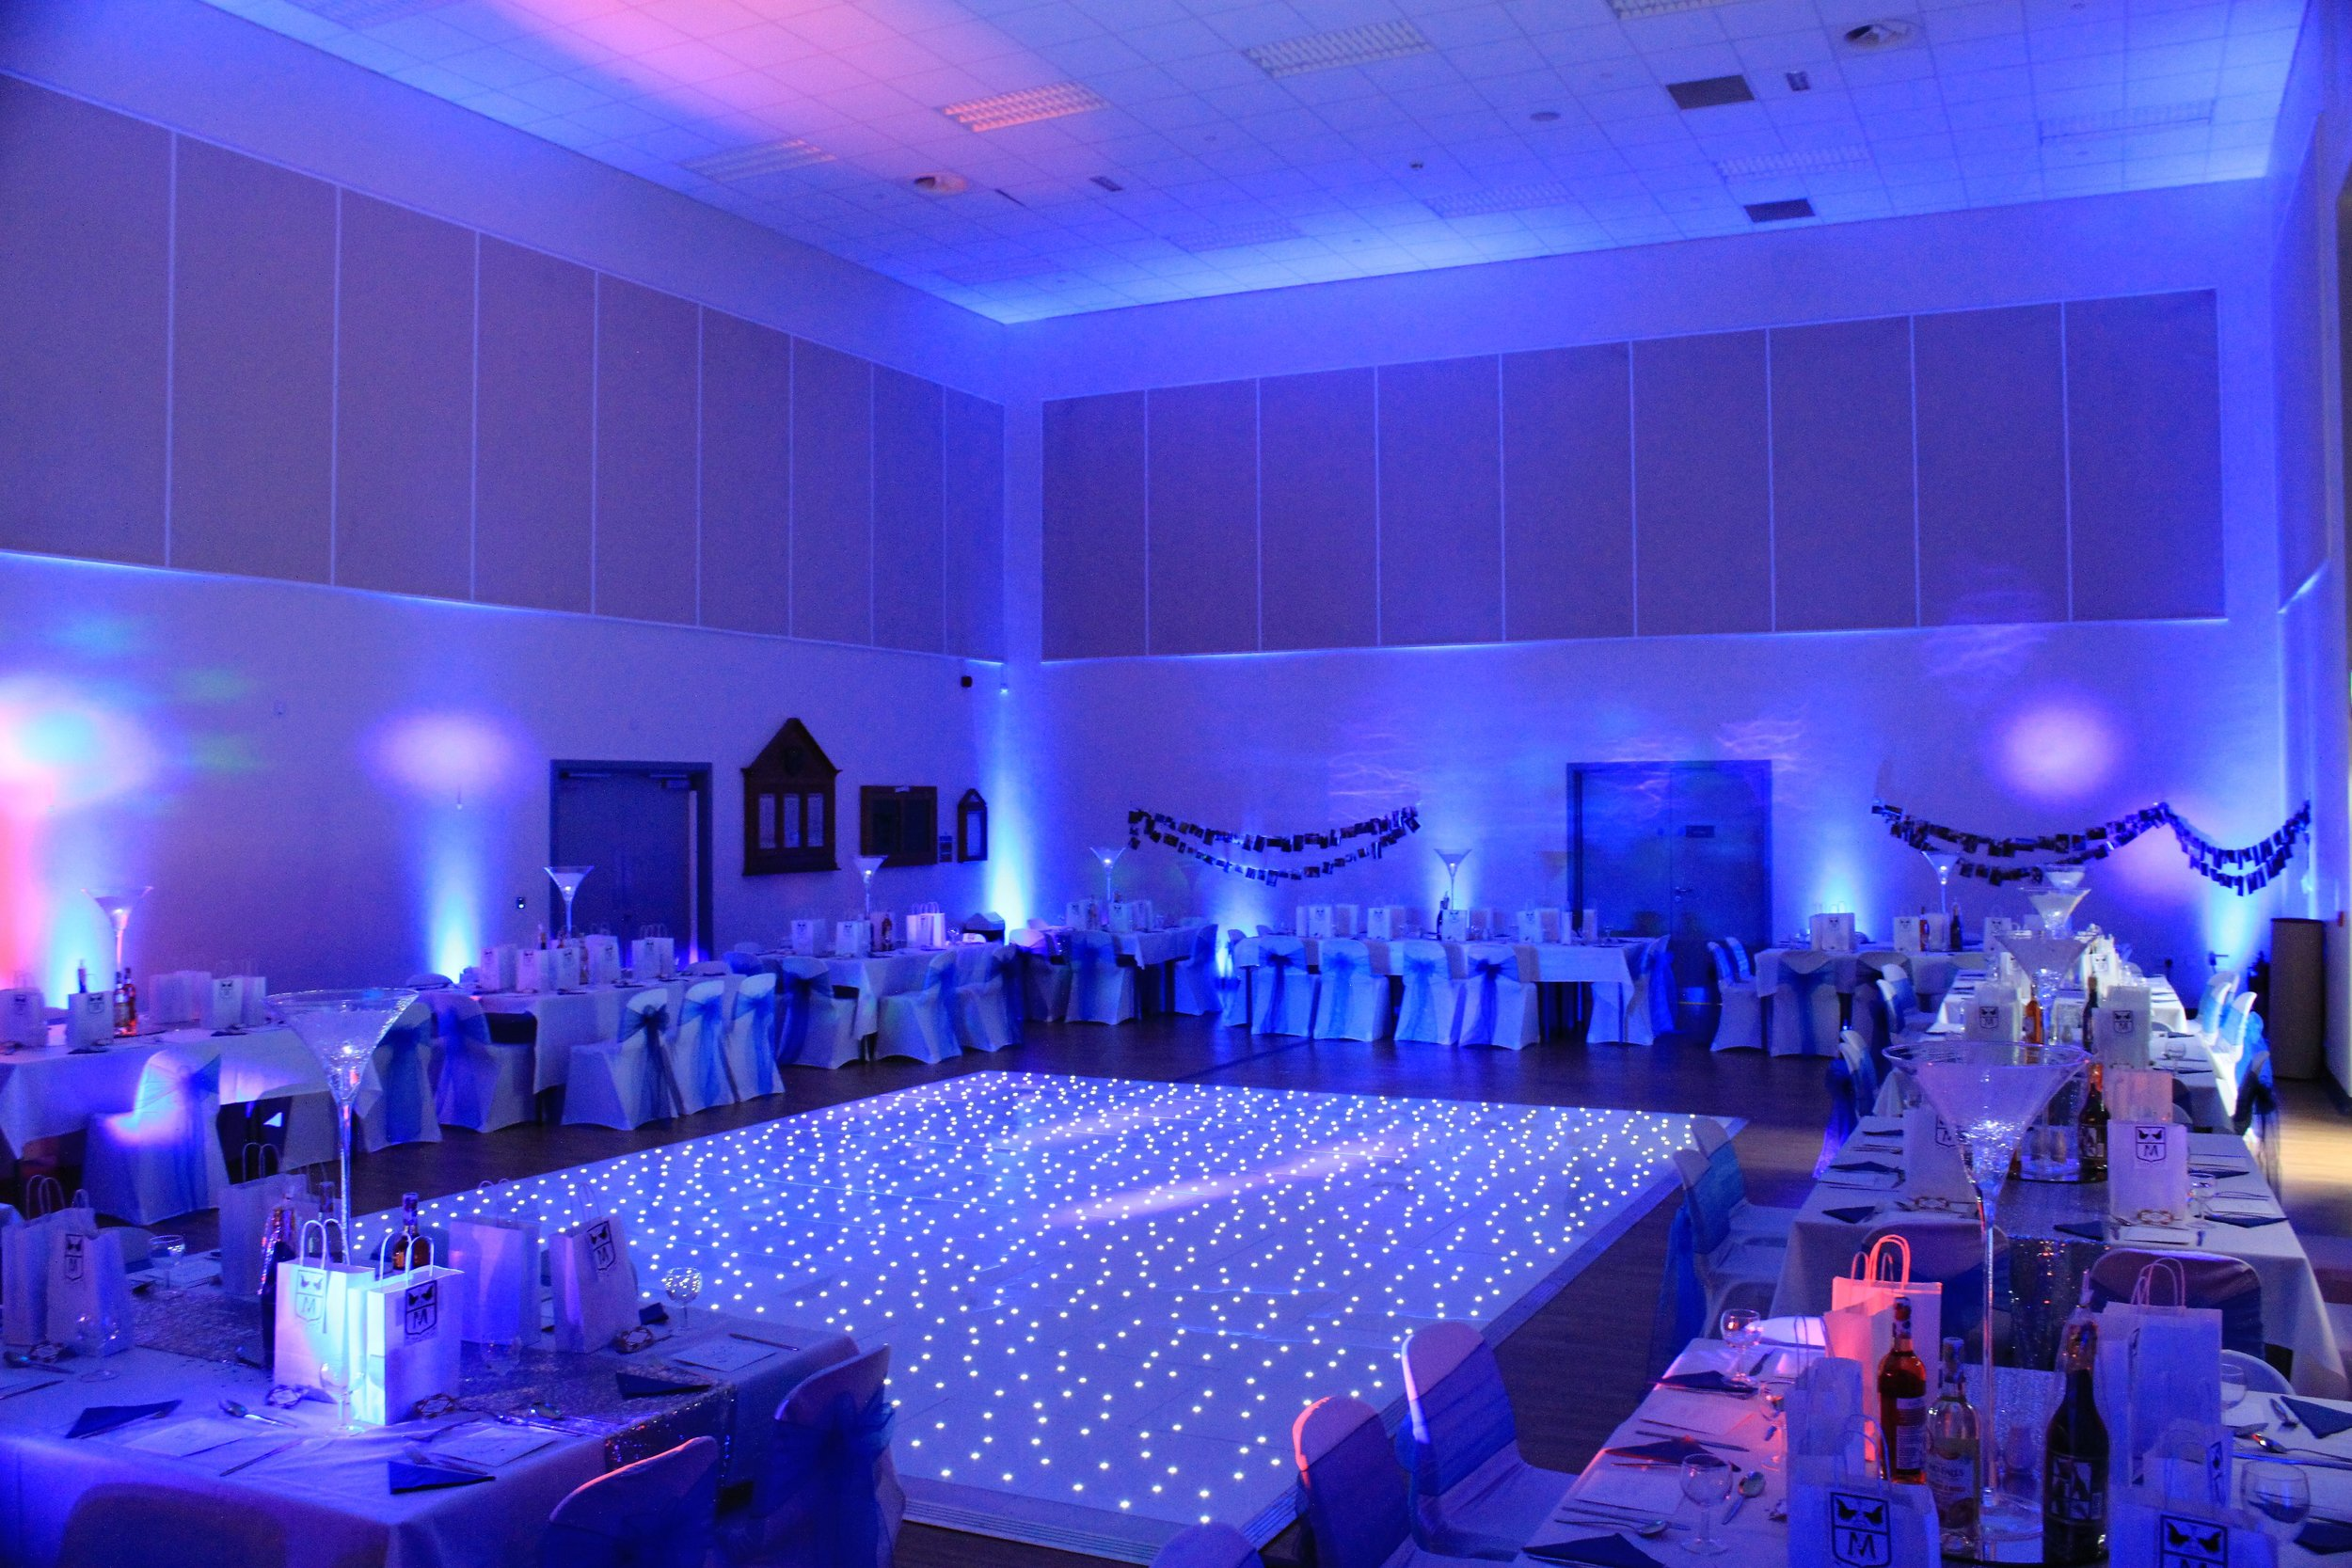 Mood Lighting - We can transform any room or venue with our state of the art LED uplighters. We can colour co-ordinate to suit your theme and leave your guests amazed at the display of powerful colour. Easily the most cost effective way to transform a venue.Hire for only £20 each, £90 for 5, £170 for 10 or £300 for a huge package of 20! We can also supply outdoor mood lighting and disco lighting.